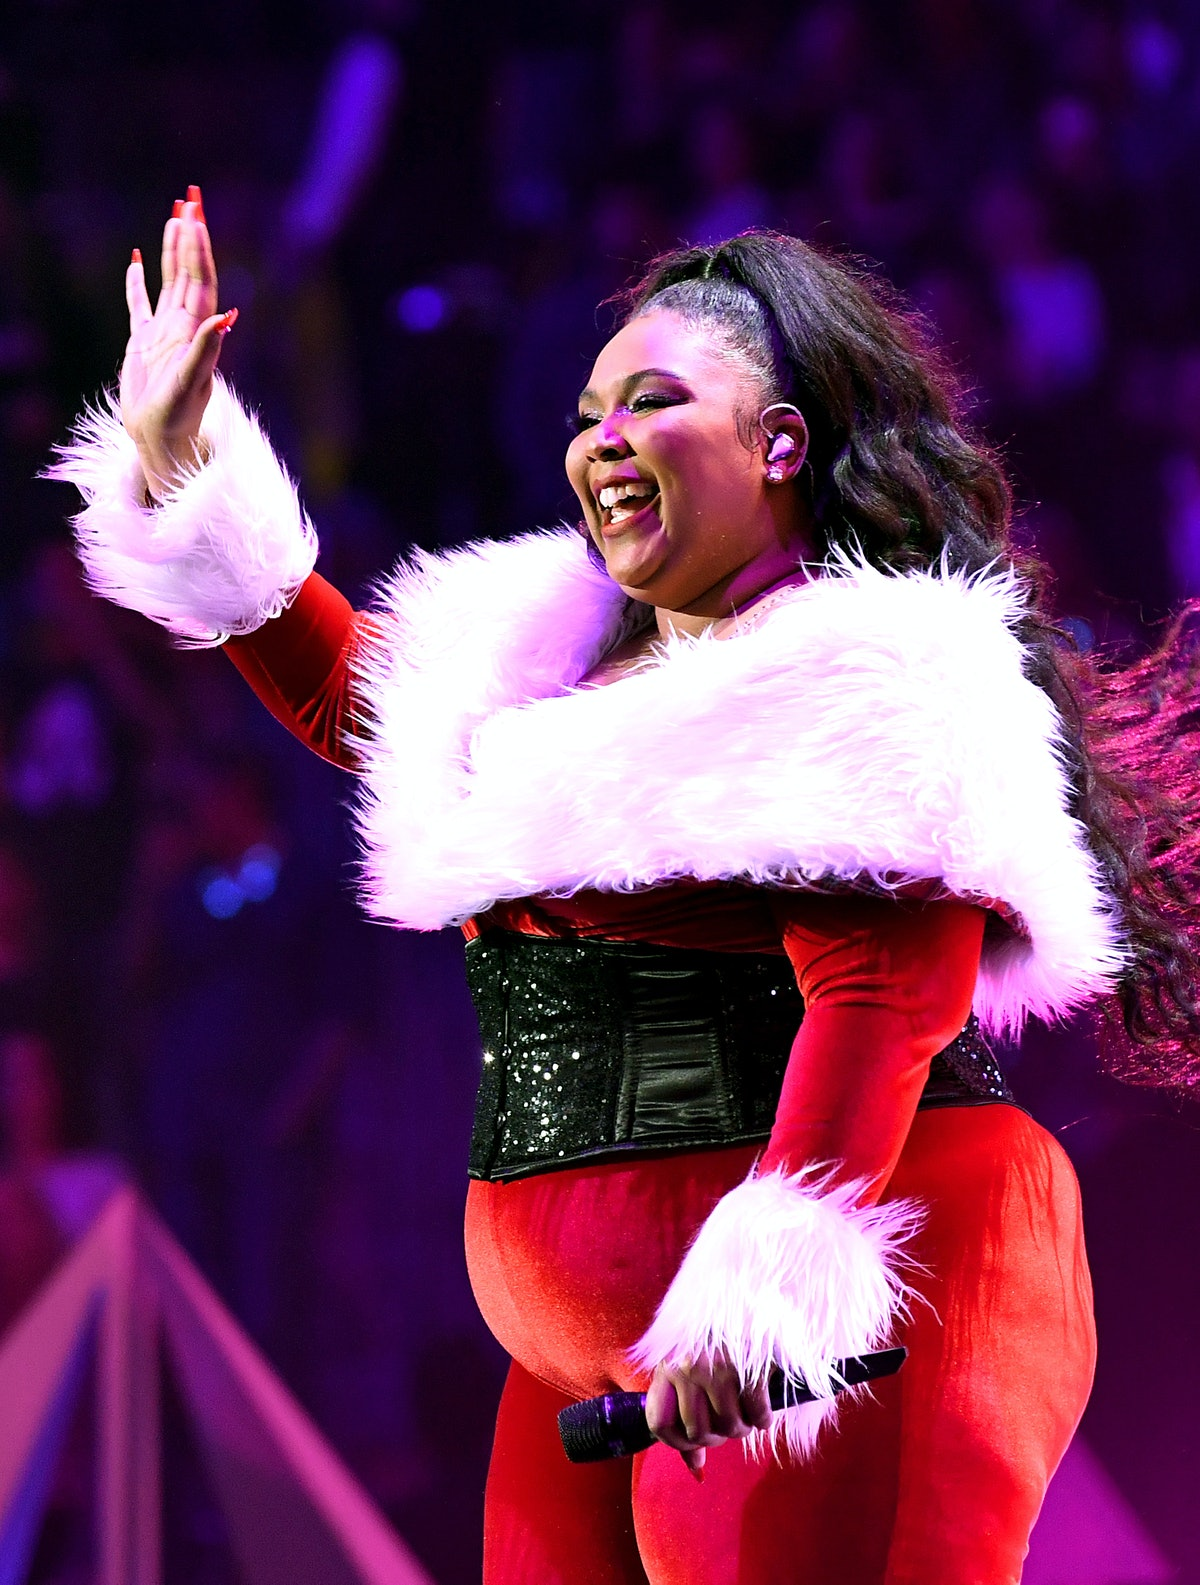 Lizzo wearing a Santa costume is a fount of inspiring self-love quotes.